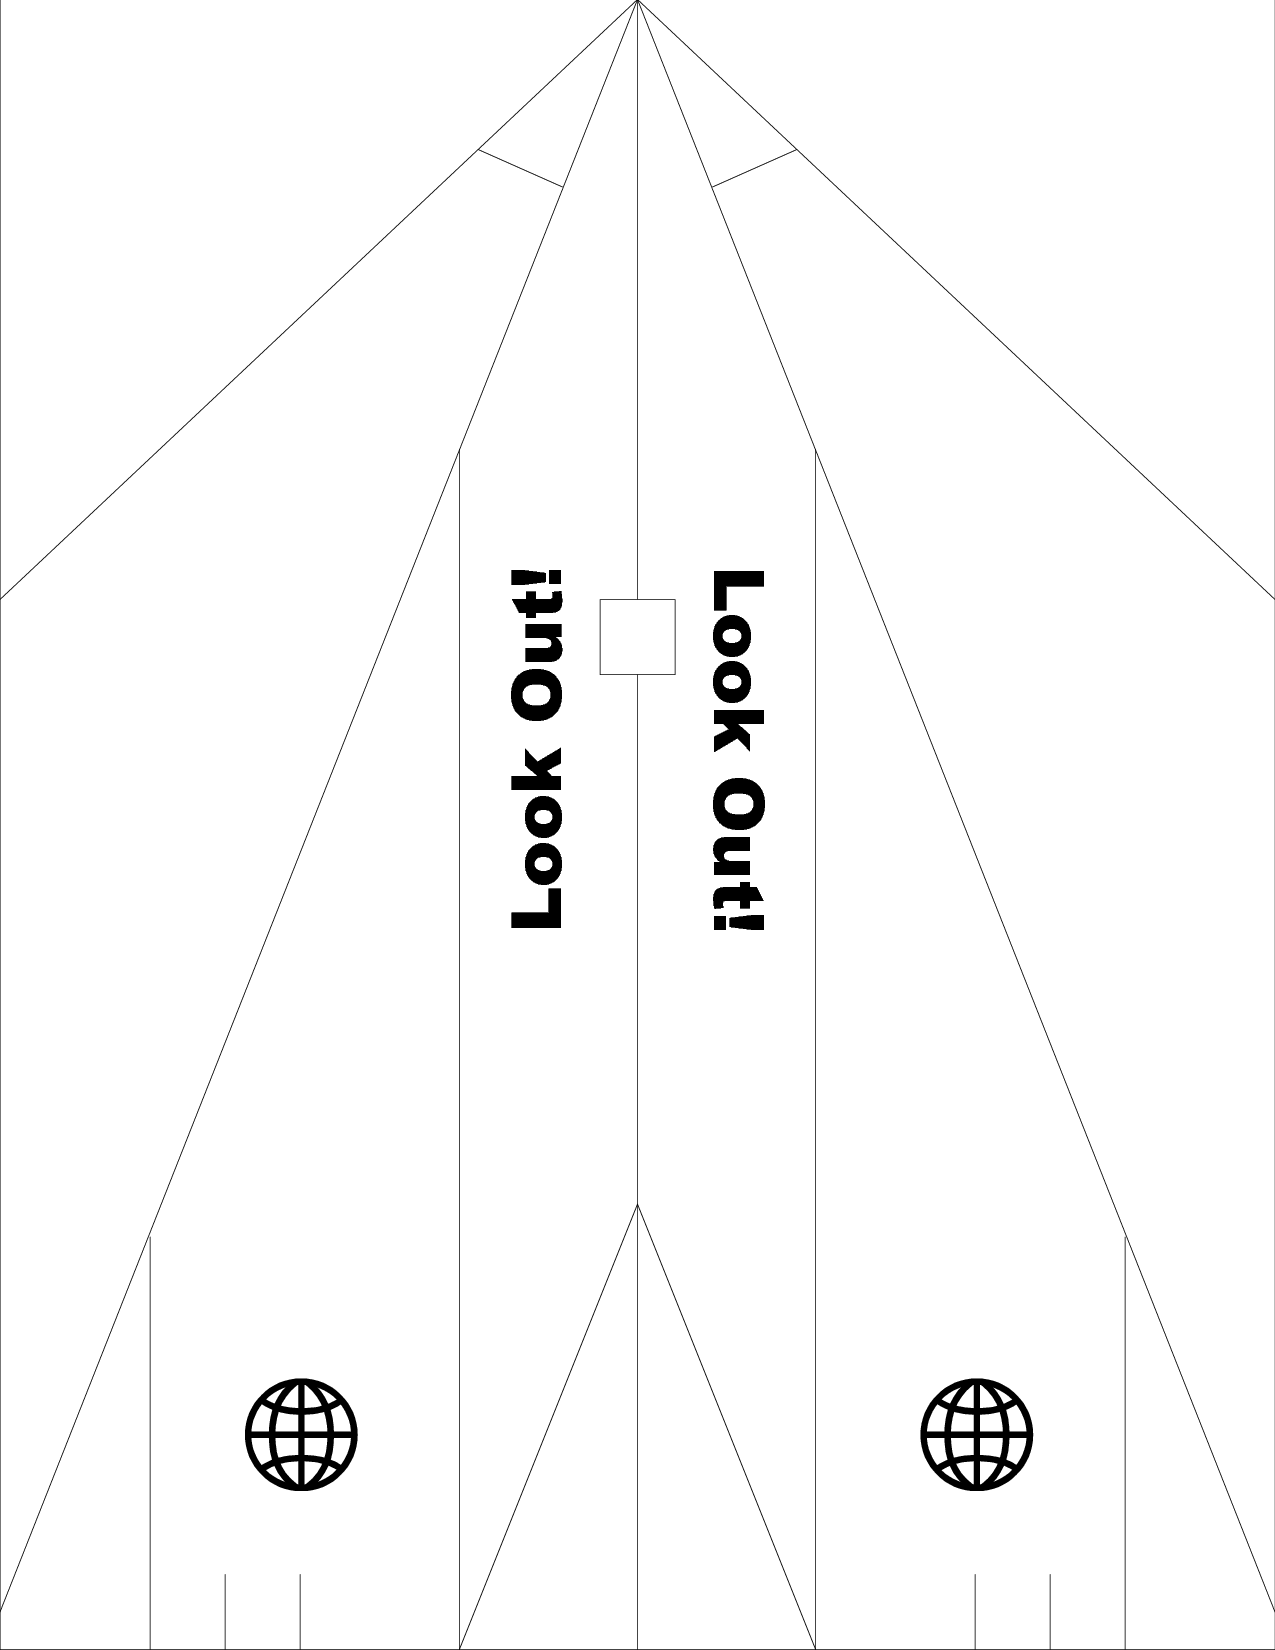 Hangar wedding - Paper Airplane Template - print and put on tables ...